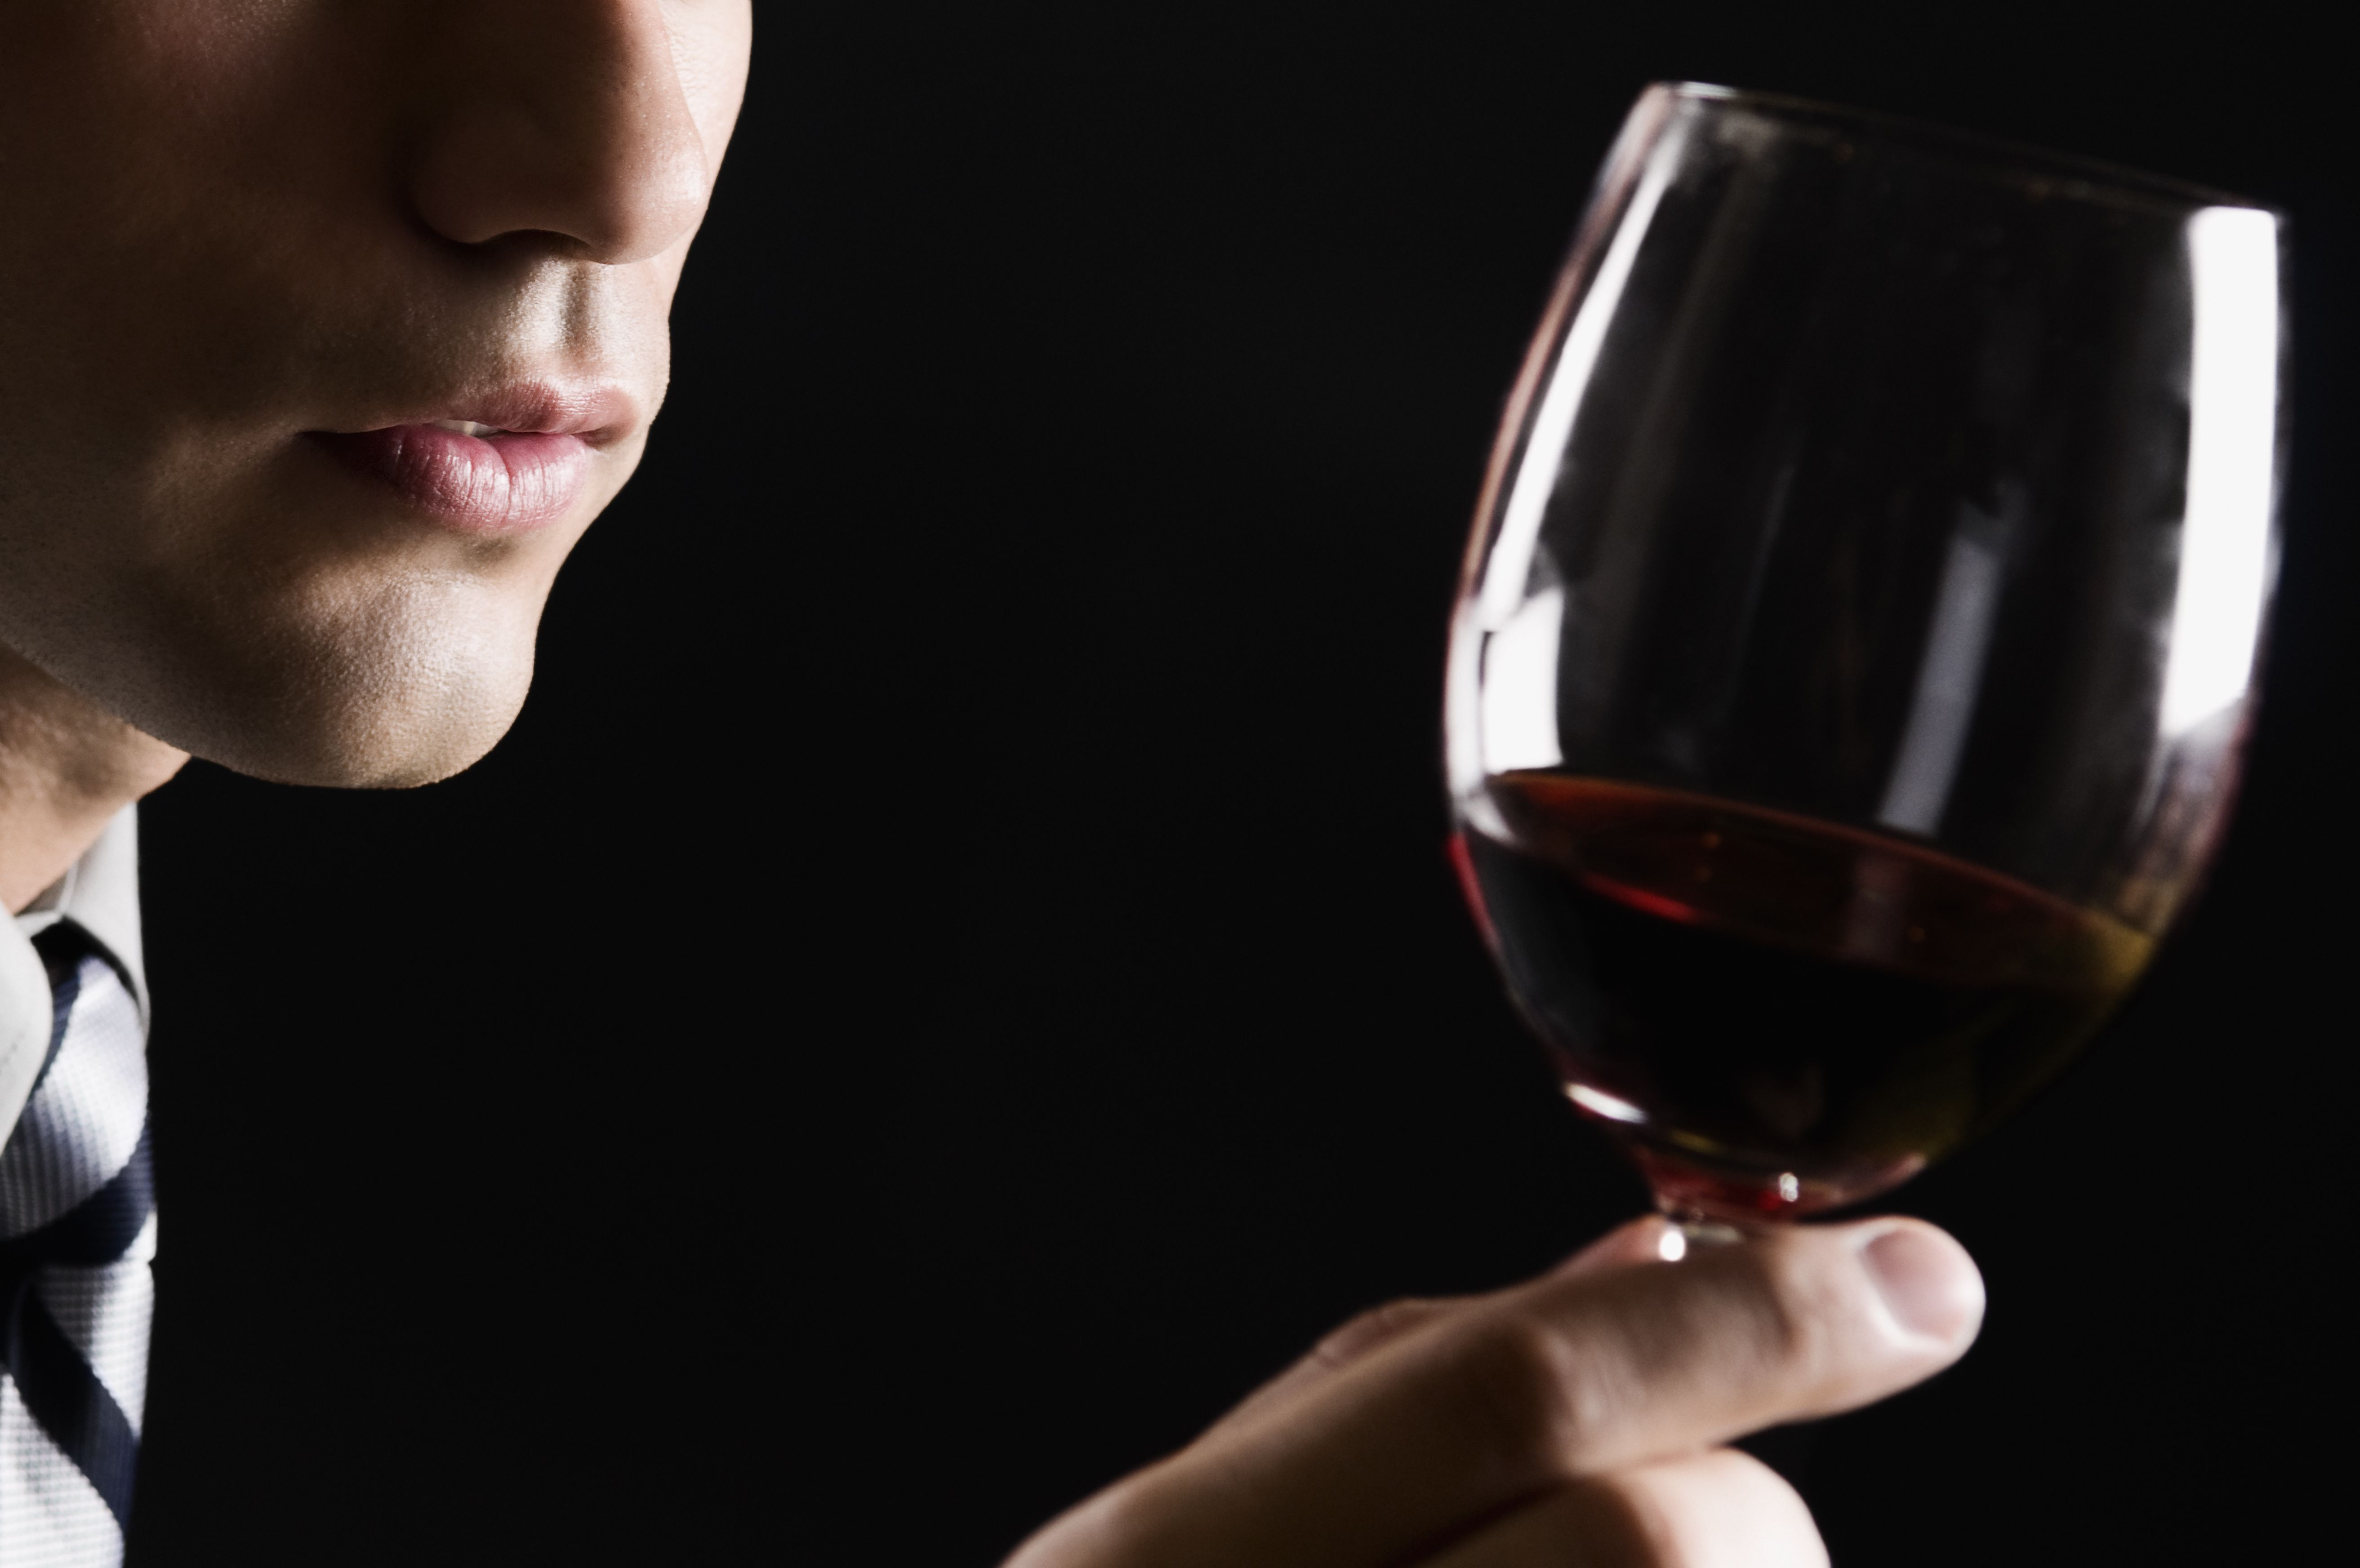 Can you drink alcohol while taking viagra